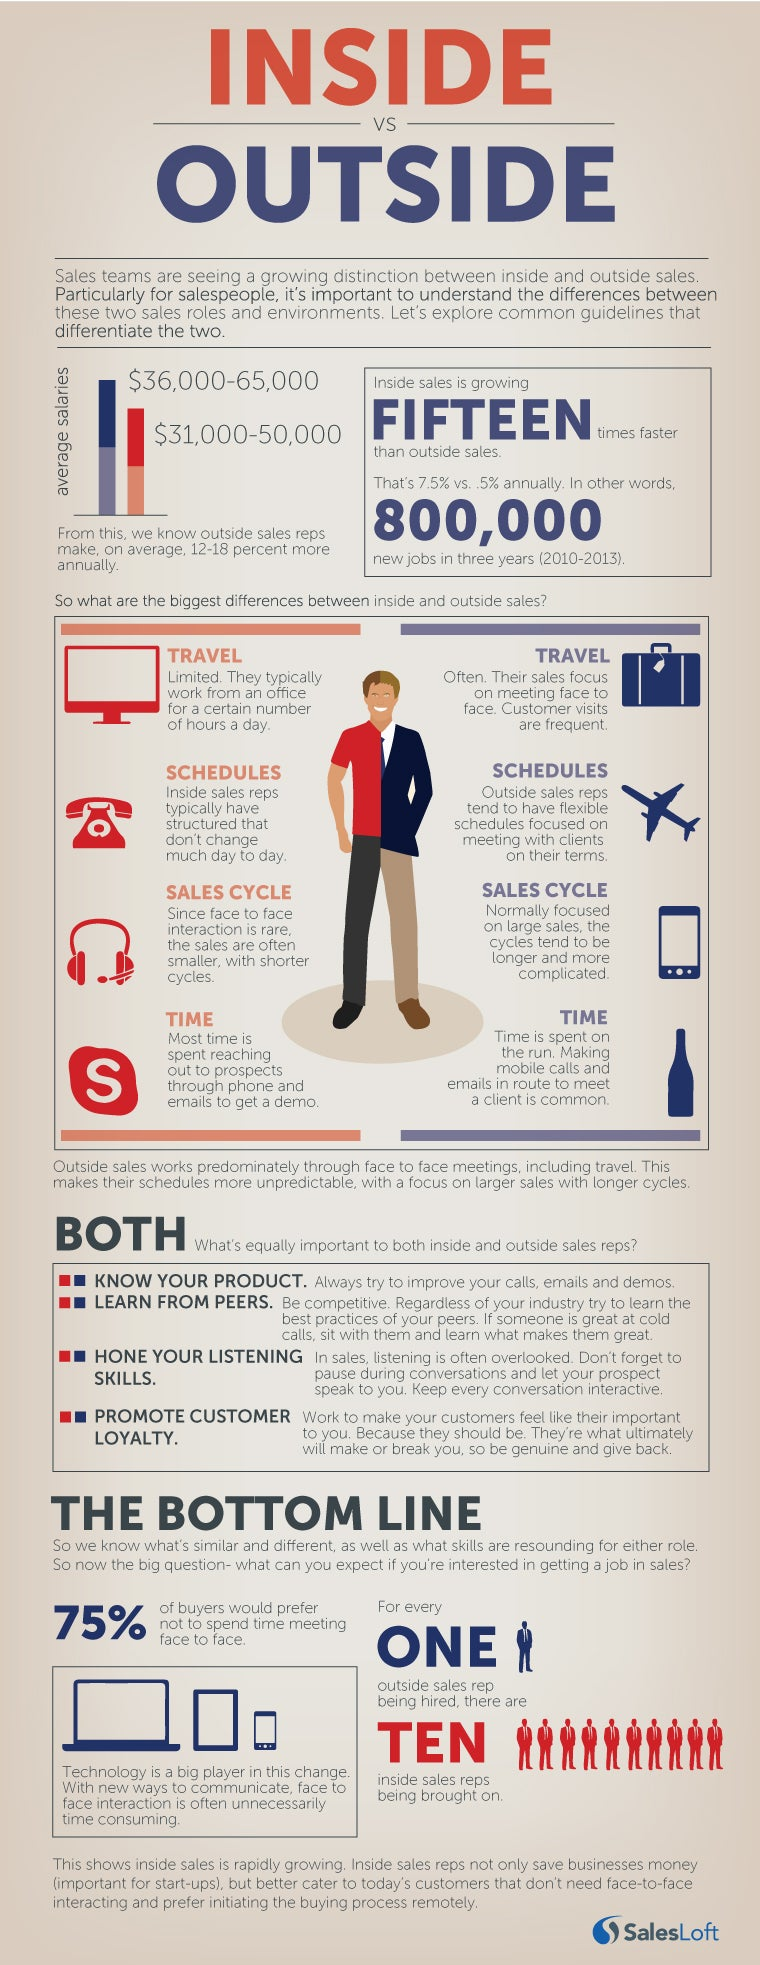 This infographic compares inside vs outside sales, exploring the similarities and differences.